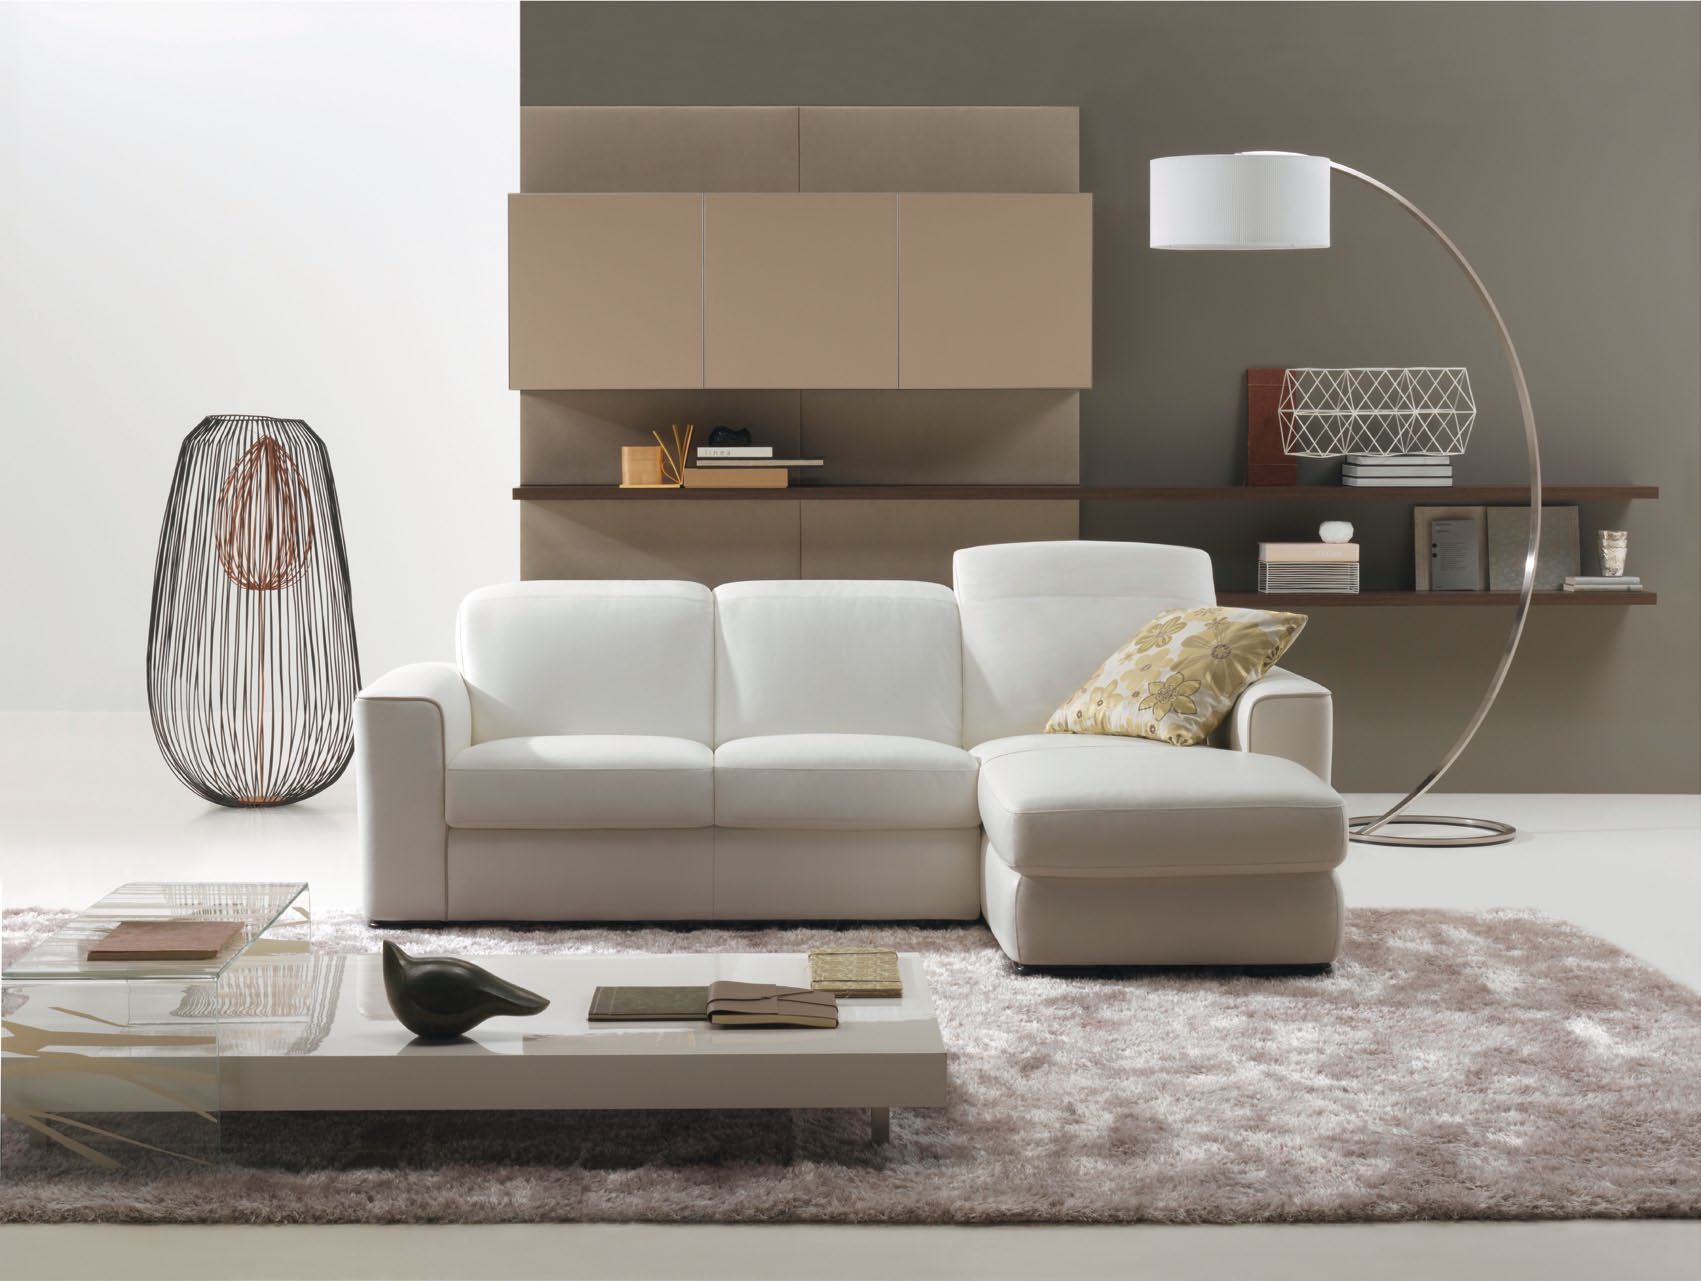 Living Room with Mal three seater Sofa Design StyleHomes